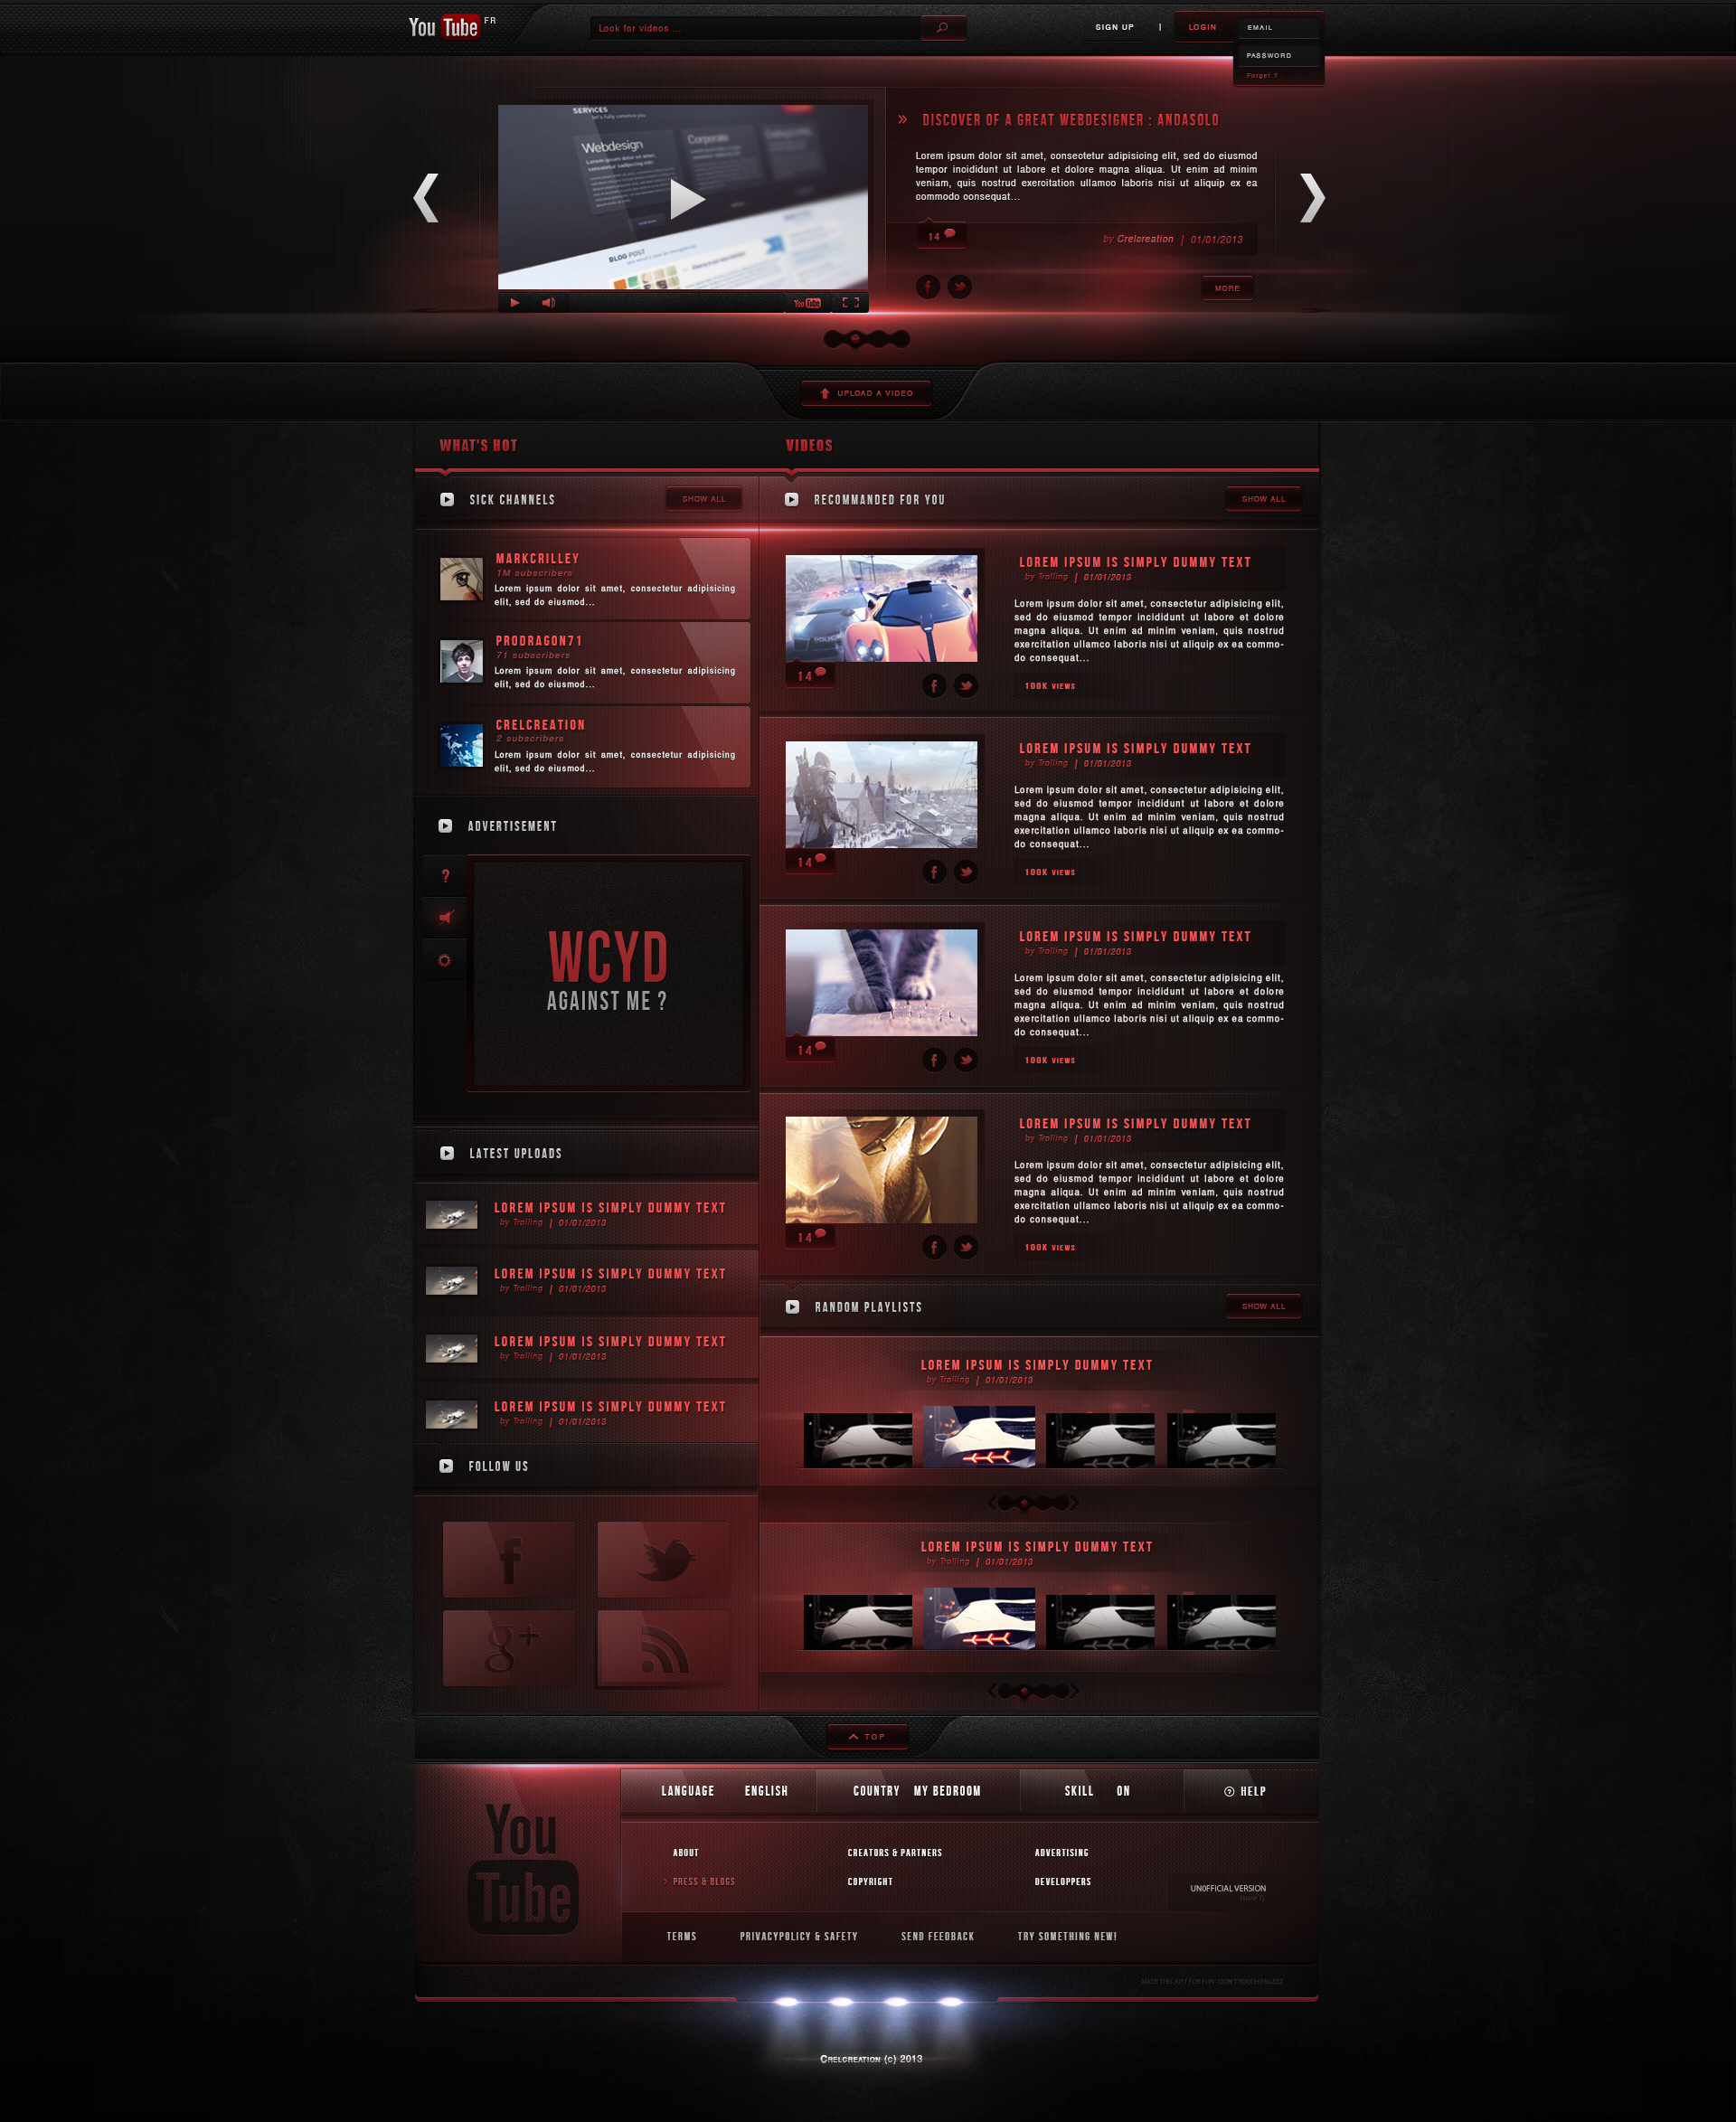 Youtube Redesign - Fun project.